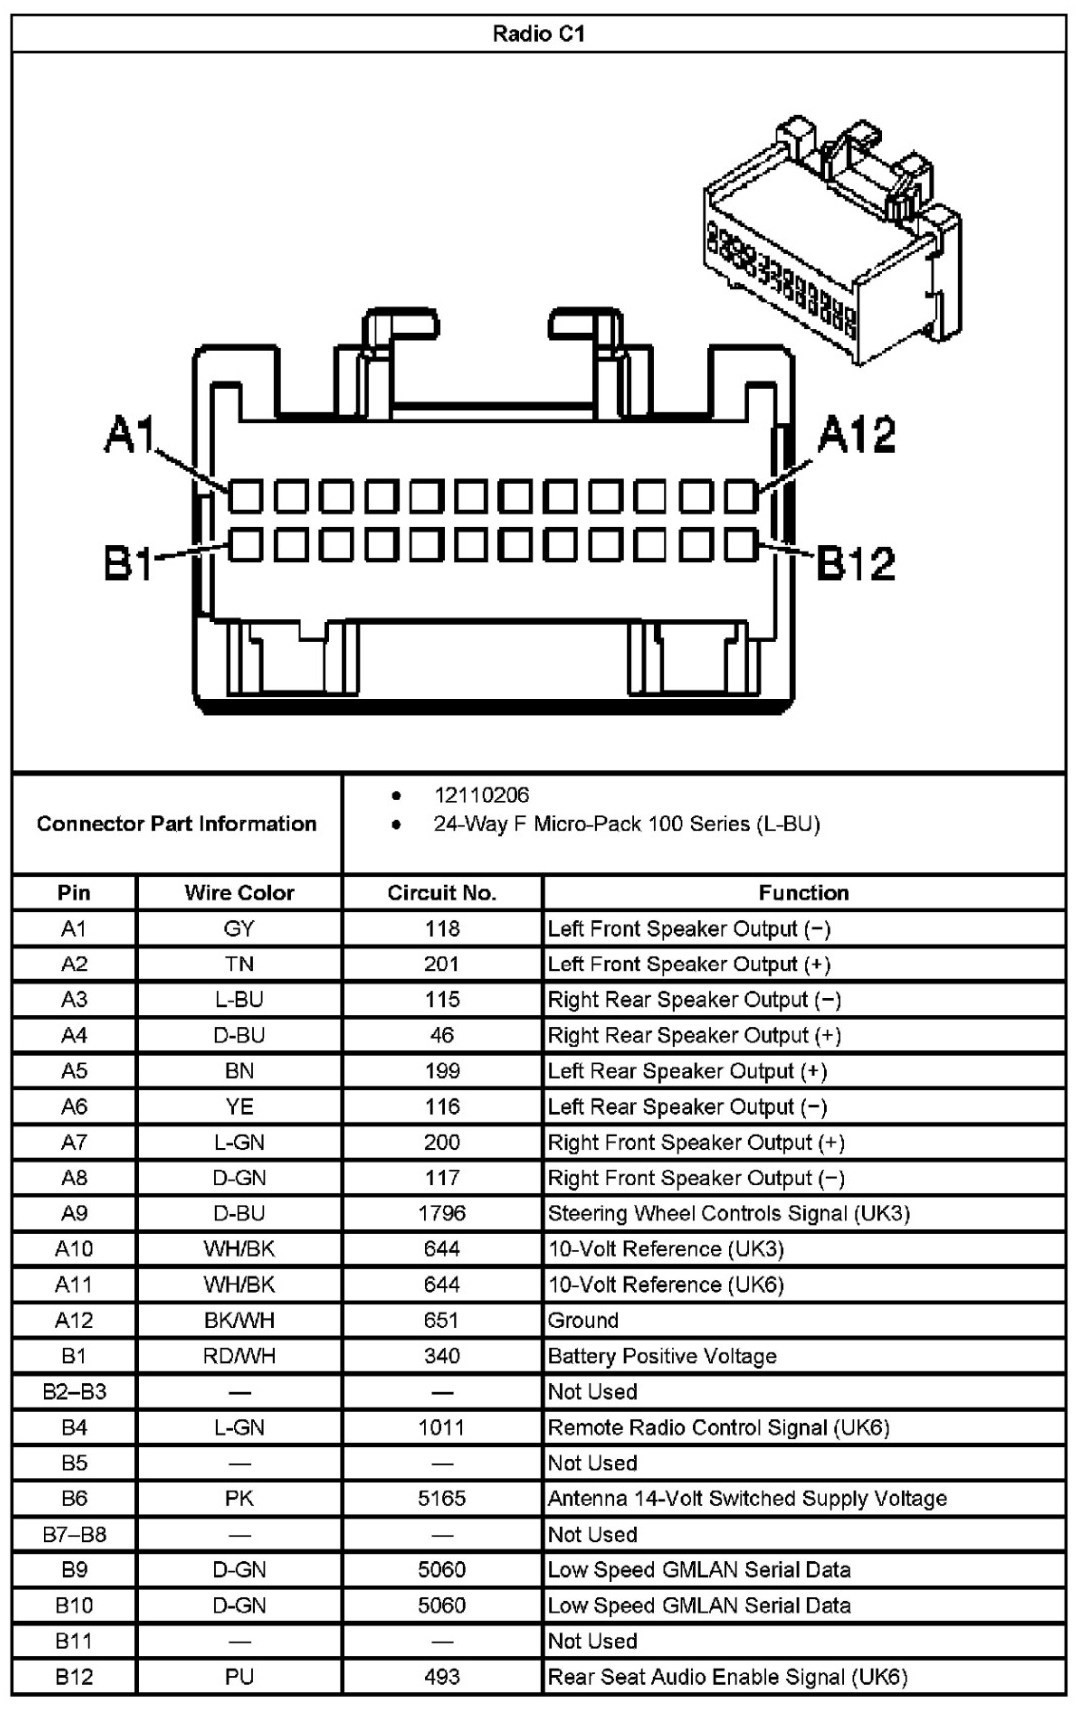 2002 chevrolet tahoe stereo wiring - wiring diagrams  file.hell.lesvignoblesguimberteau.fr